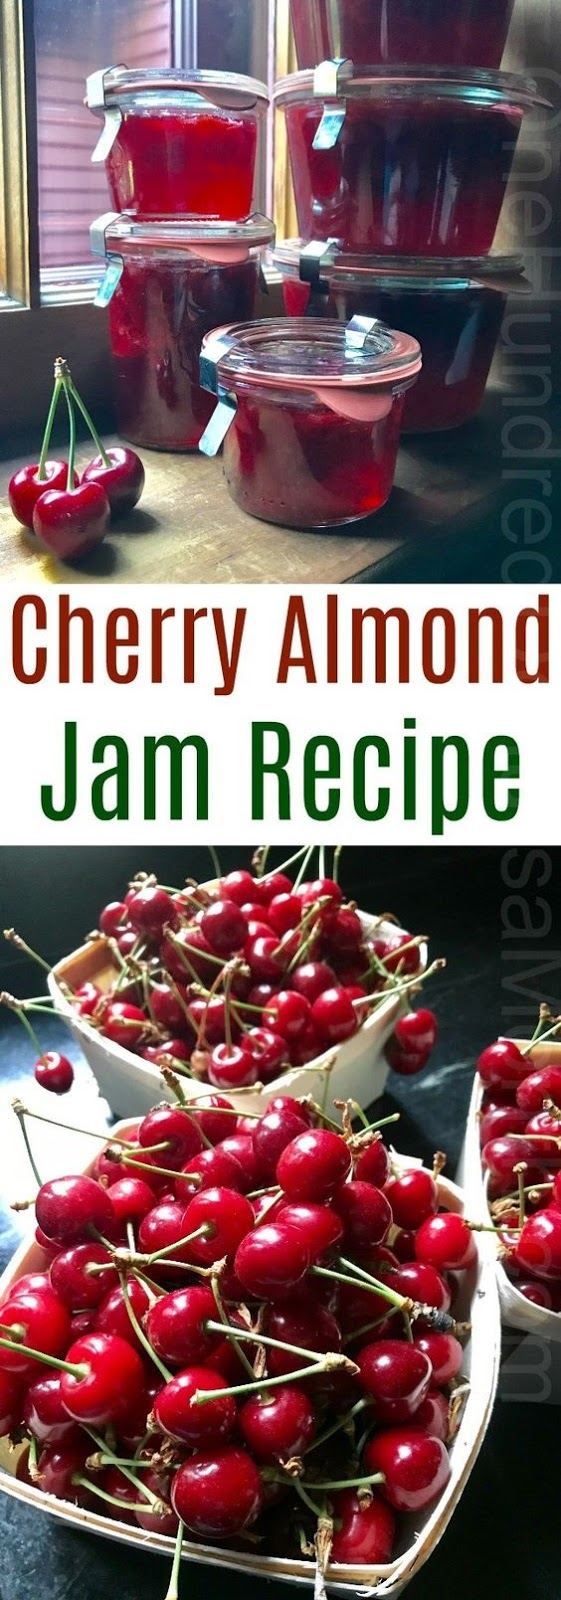 Cherry Almond Jam Recipe